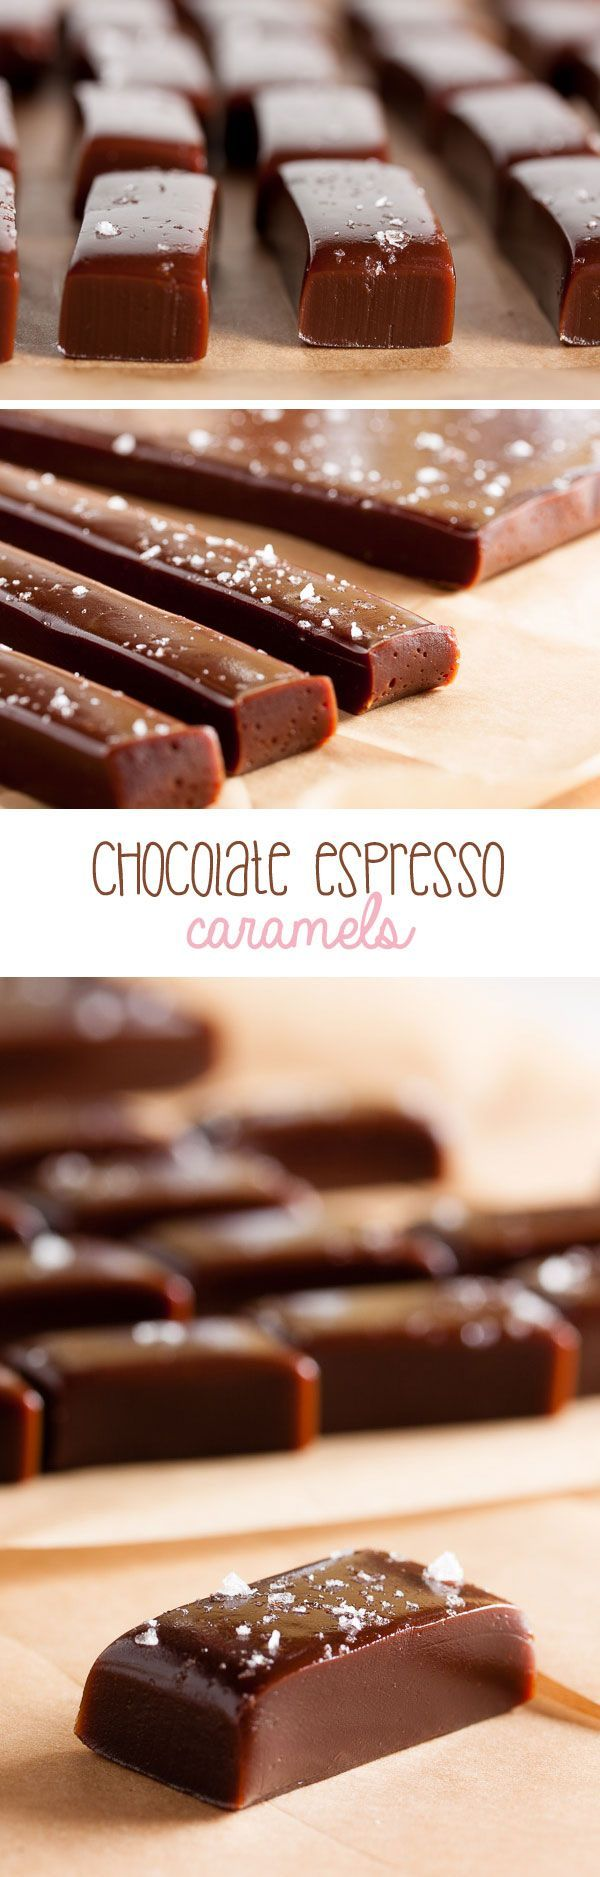 Chocolate Espresso Caramels – combining three wonderful flavours into one delicious treat.